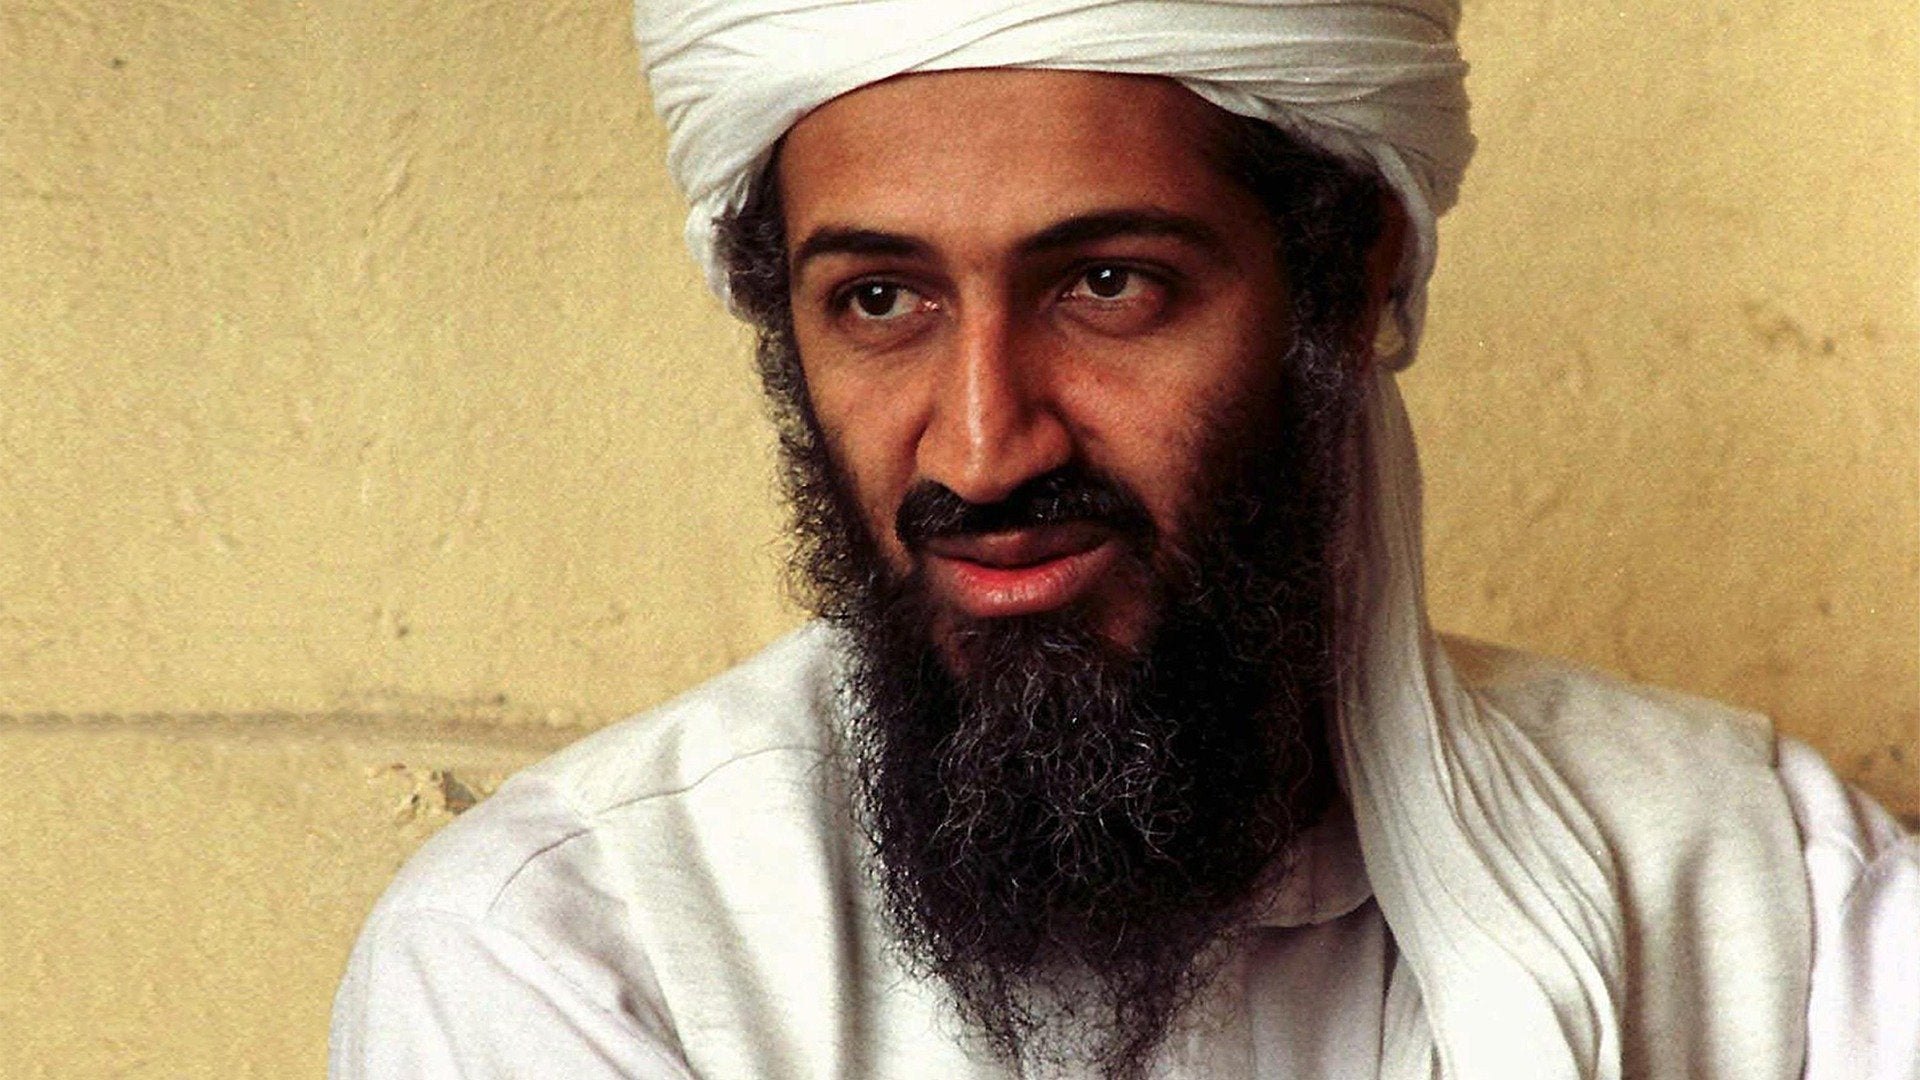 Capturing Bin Laden